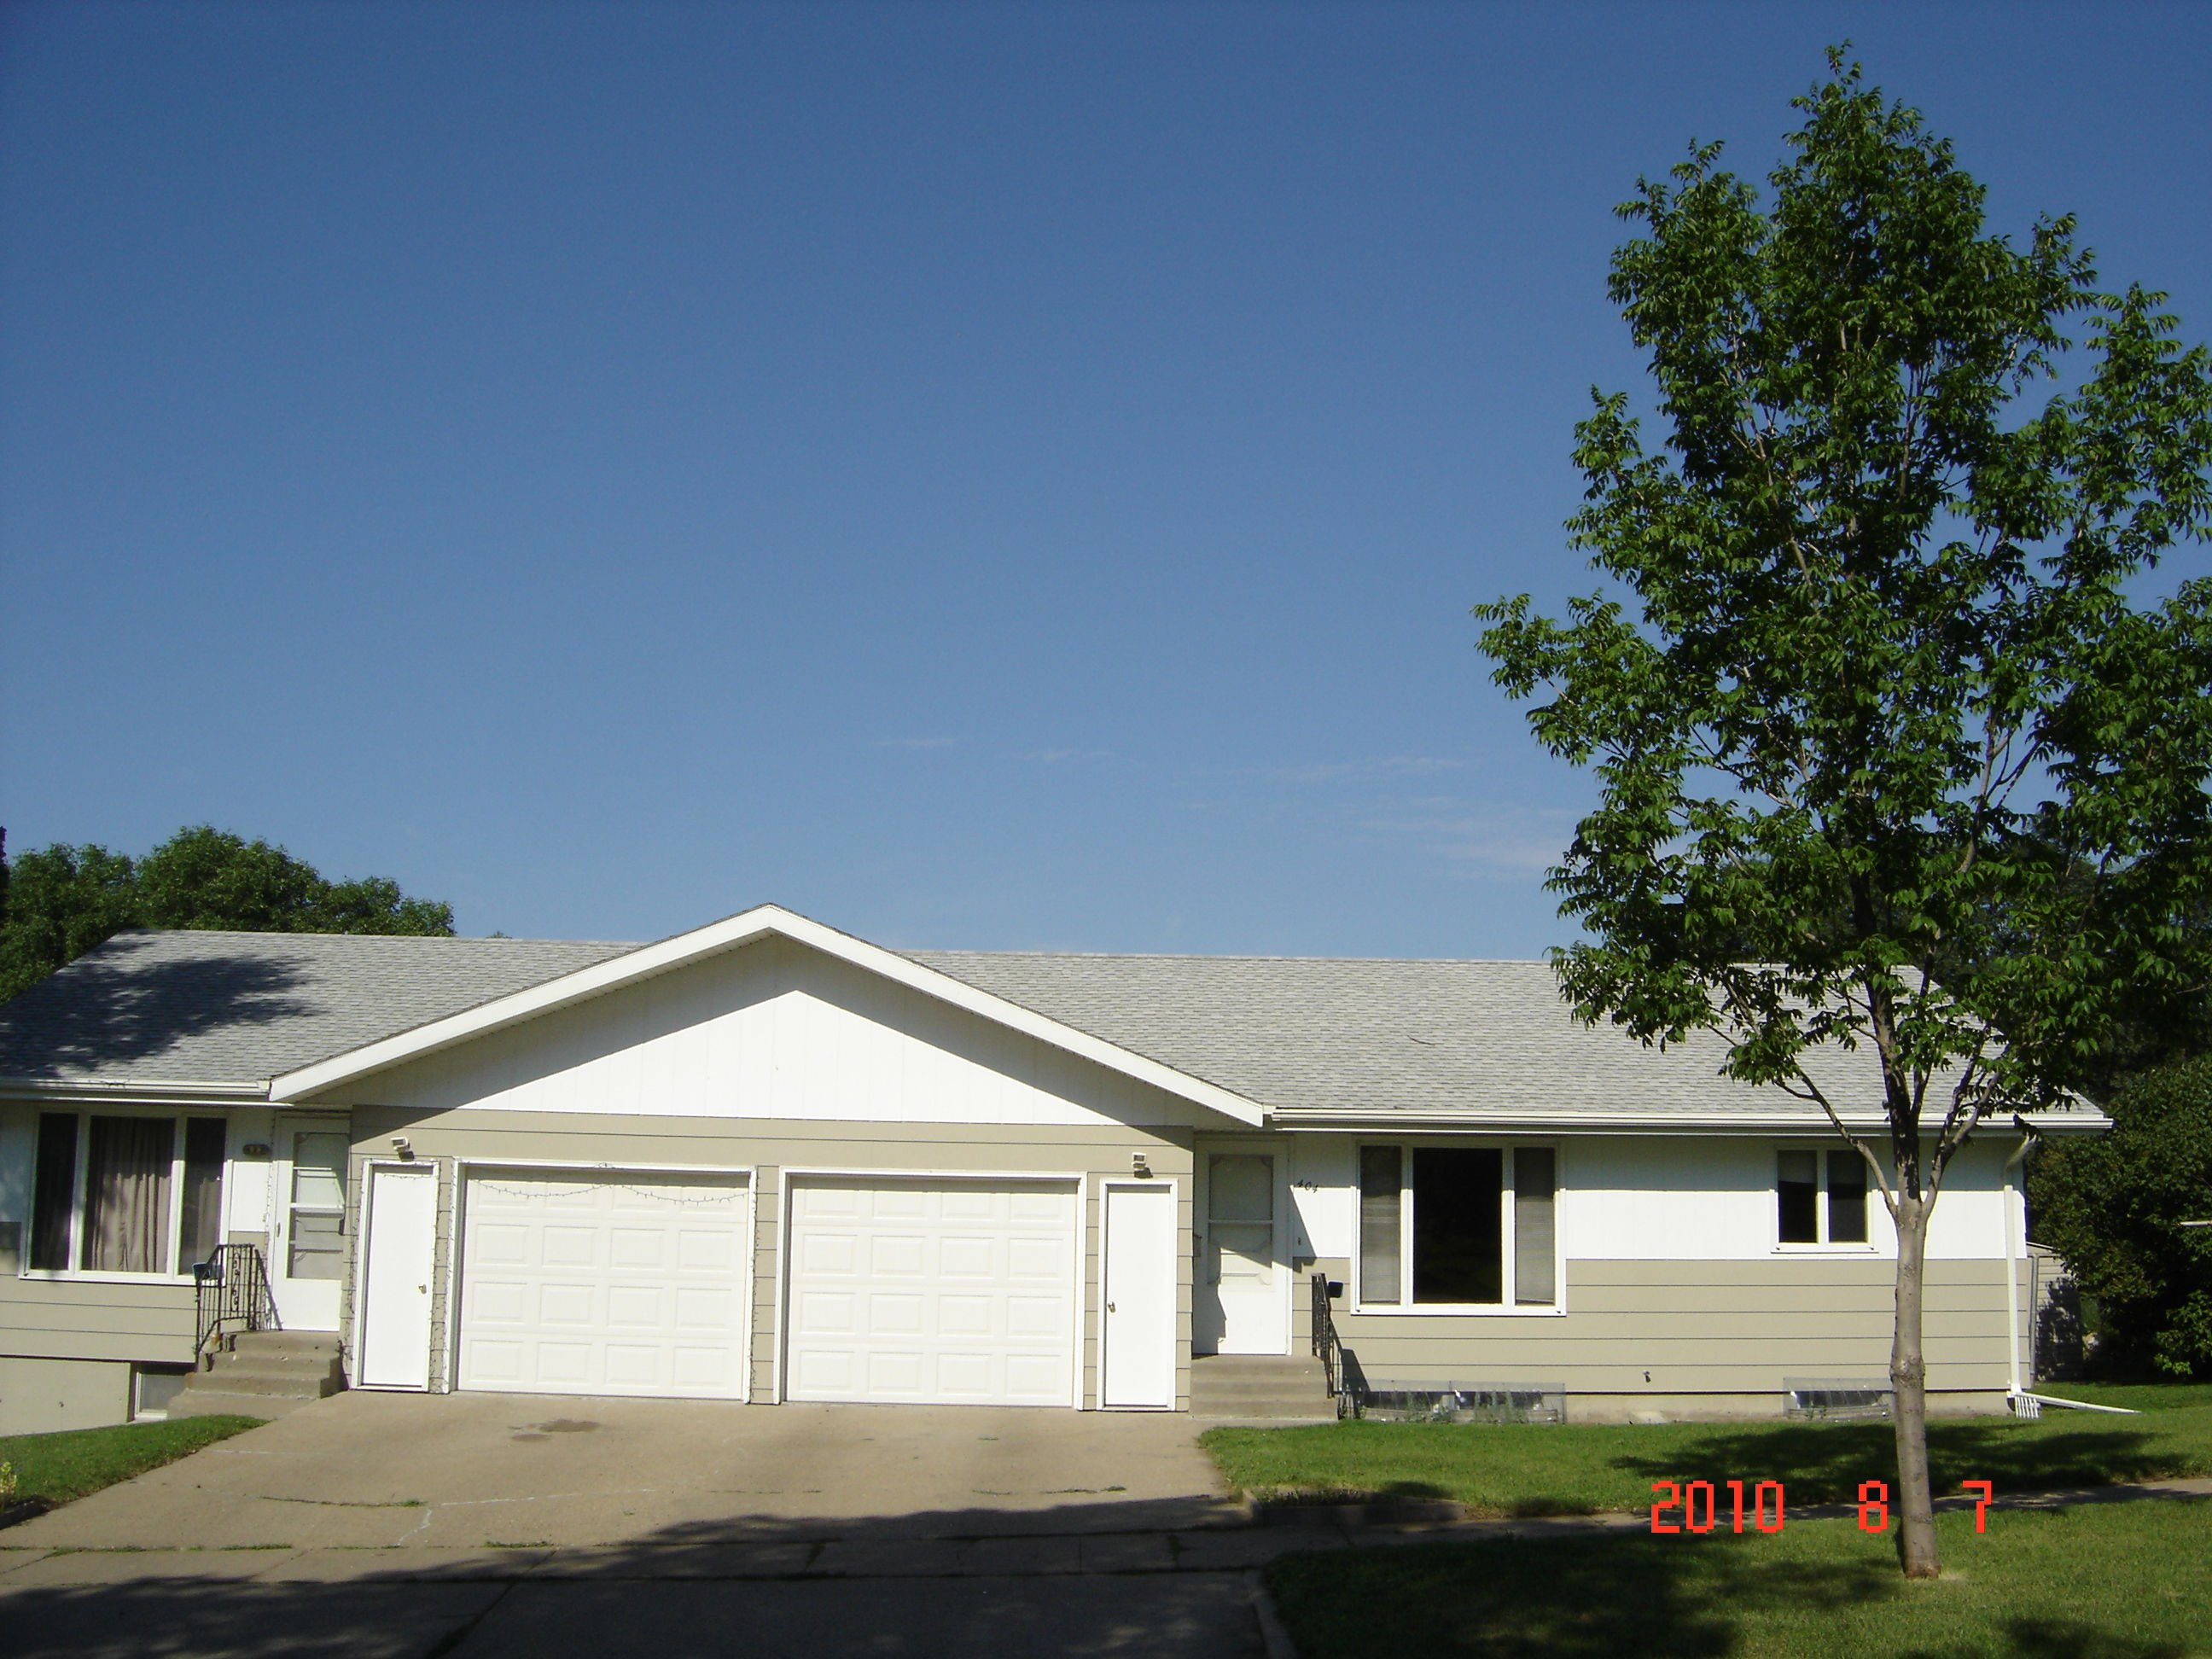 3-bedroom, 1 and 1/2 bathroom.   Home living at this spacious side by side duplex! image 1